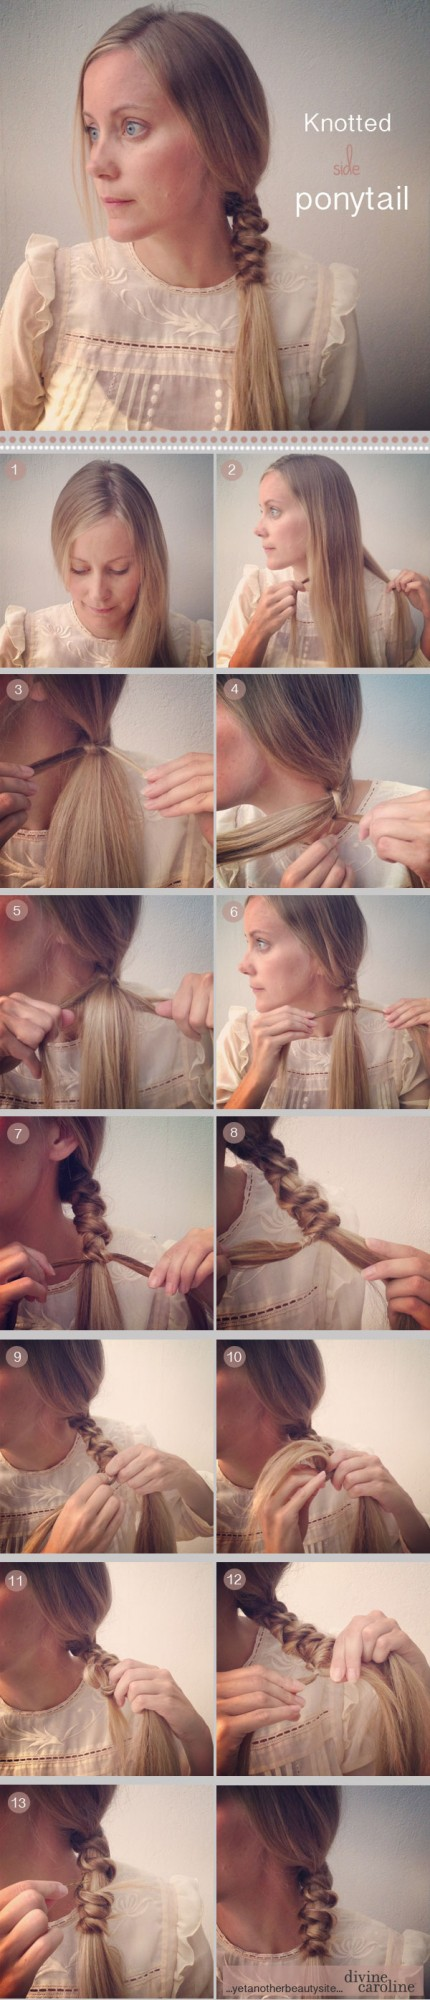 19 Great Tutorials for Perfect Hairstyles (14)